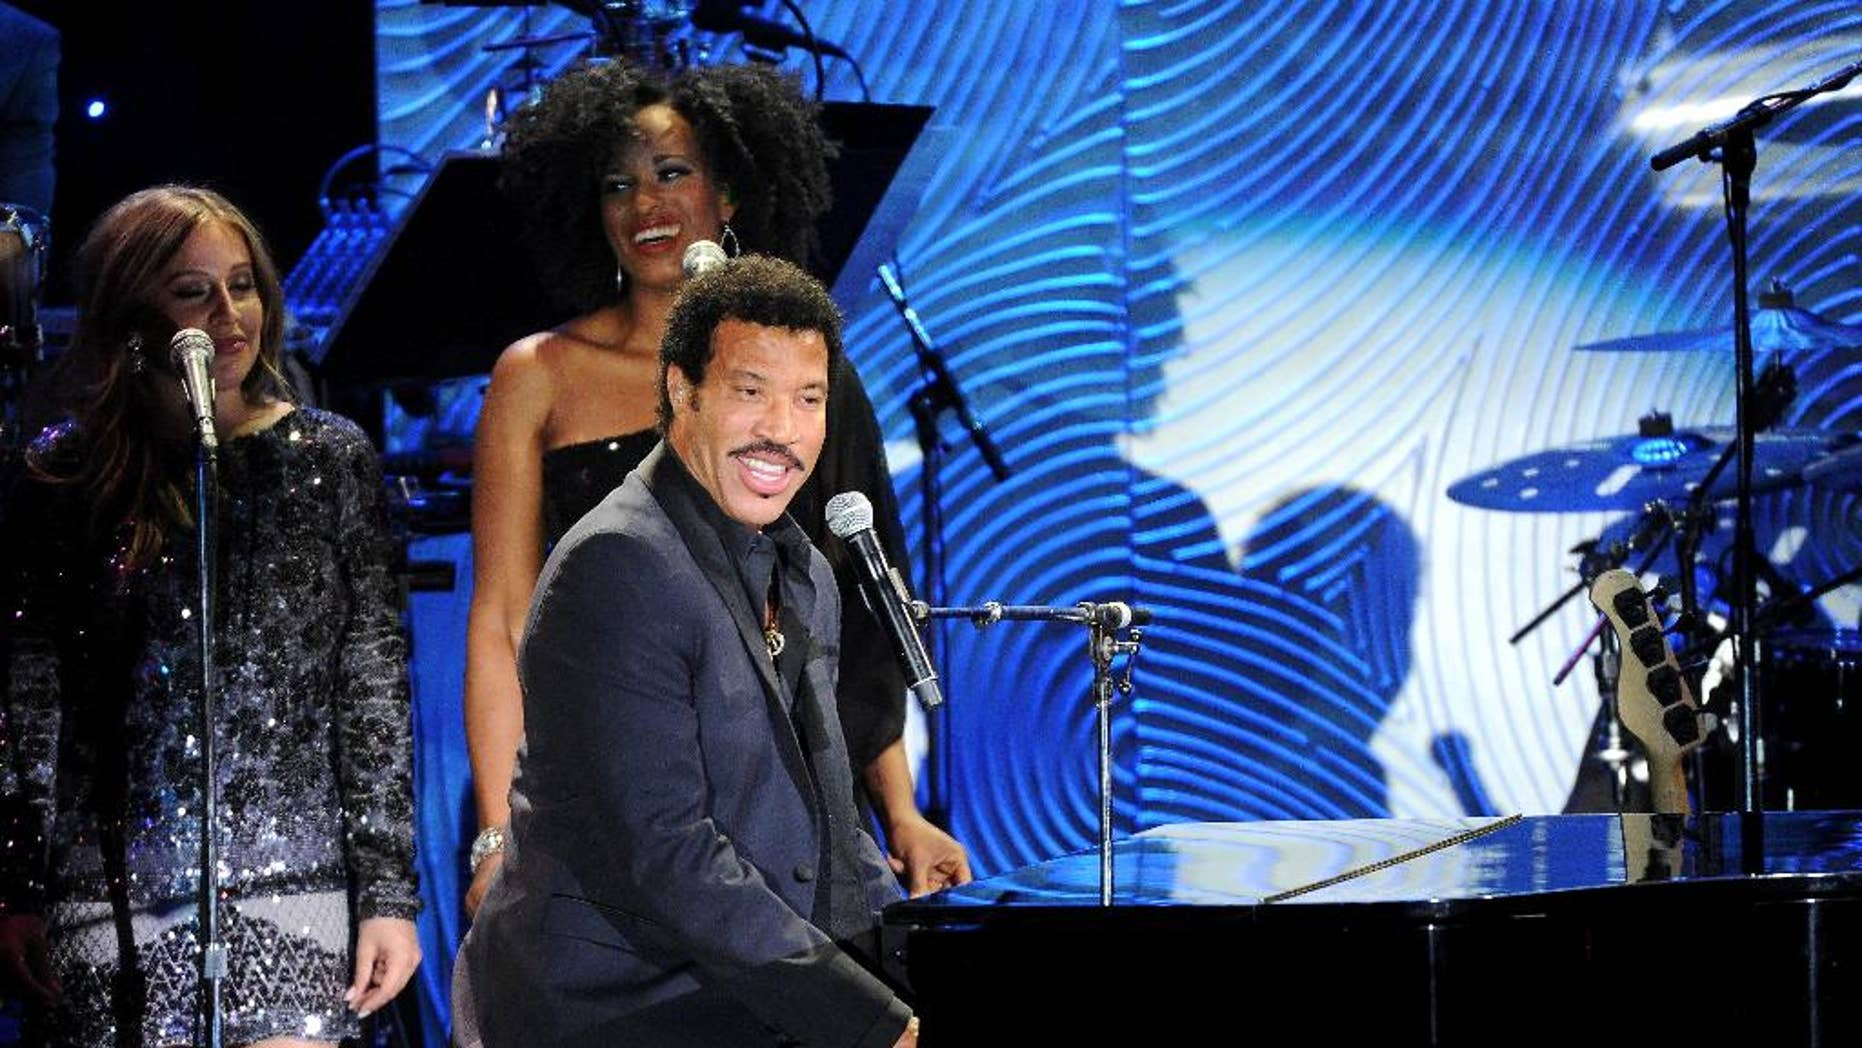 """FILE - In this Jan. 25, 2014 file photo, recording artist Lionel Richie performs onstage at The 56th Annual GRAMMY Awards Salute to Industry Icons with Clive Davis, at the Beverly Hilton Hotel in Beverly Hills, Richie is keeping busy with his """"All the Hits All Night Long"""" tour, which kicks off its second North American leg May 29, 2014, in Vancouver. (Photo by Frank Micelotta/Invision/AP, file)"""